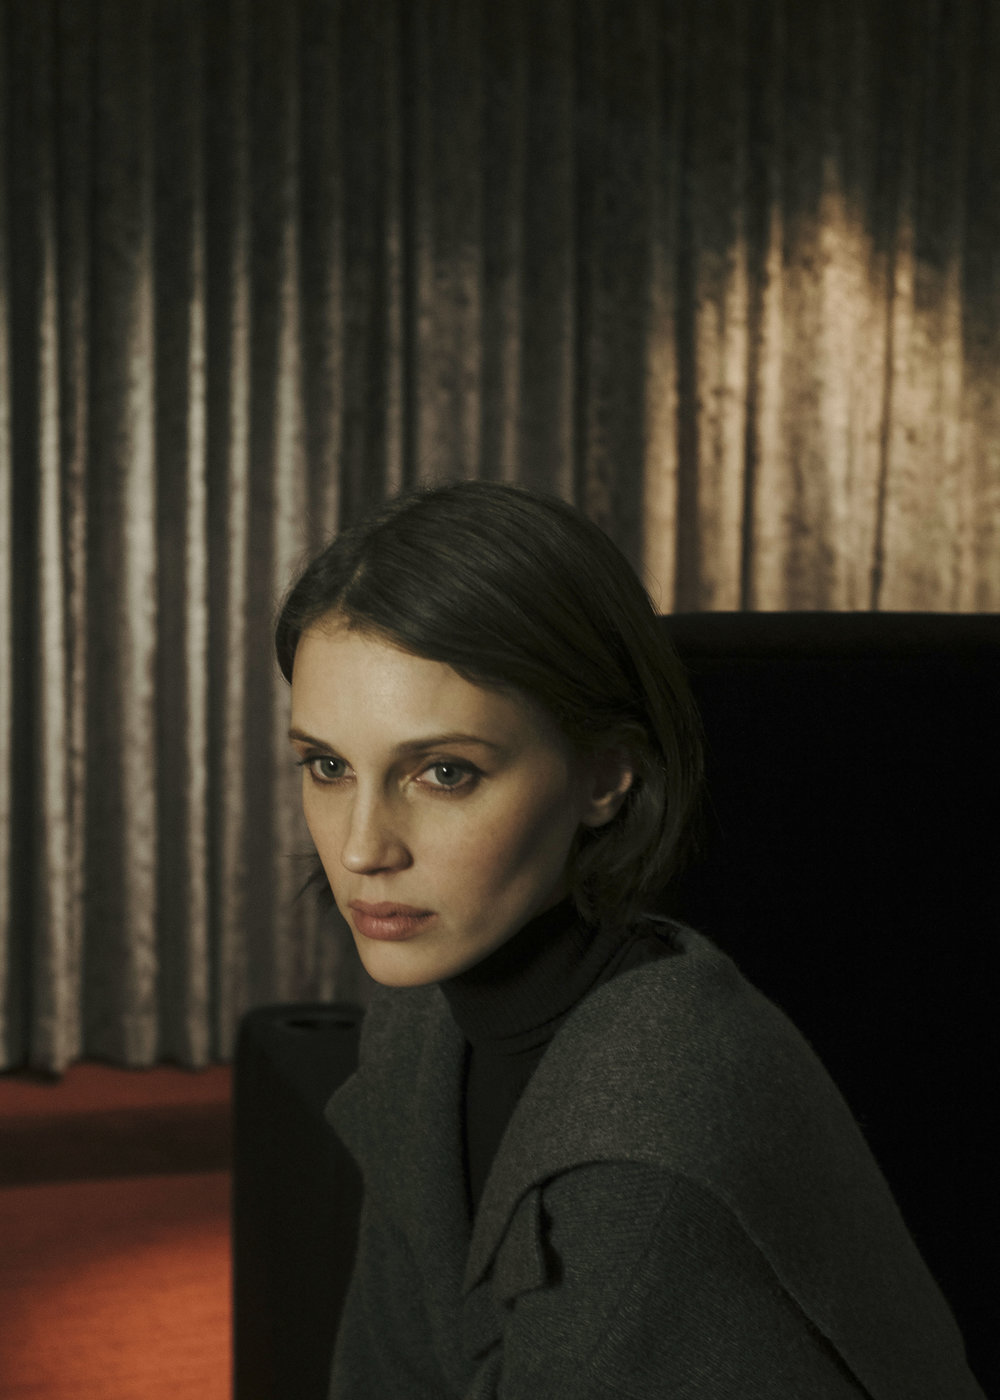 Marine Vacth  | images by by Kayee Kiu | Fashion Credits:  MAX MARA  coat and  BURBERRY  turtleneck